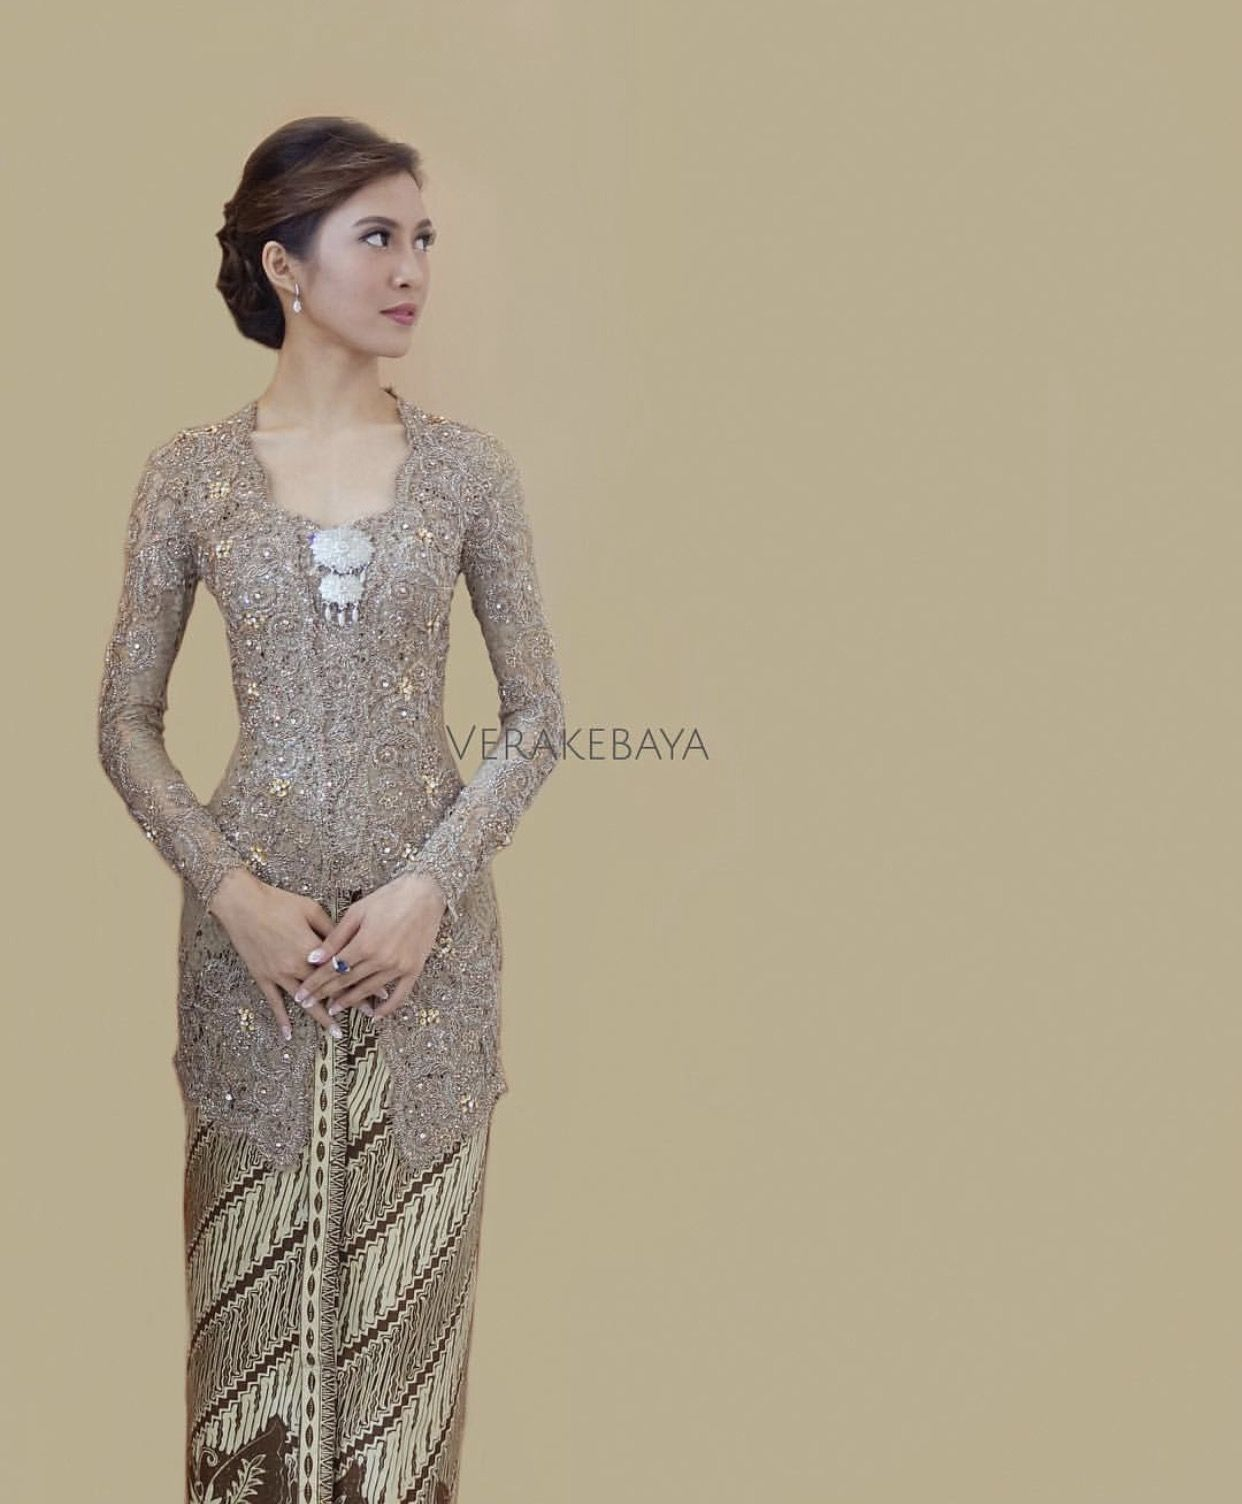 10+ Kebaya images in 10  kebaya, kebaya dress, kebaya lace